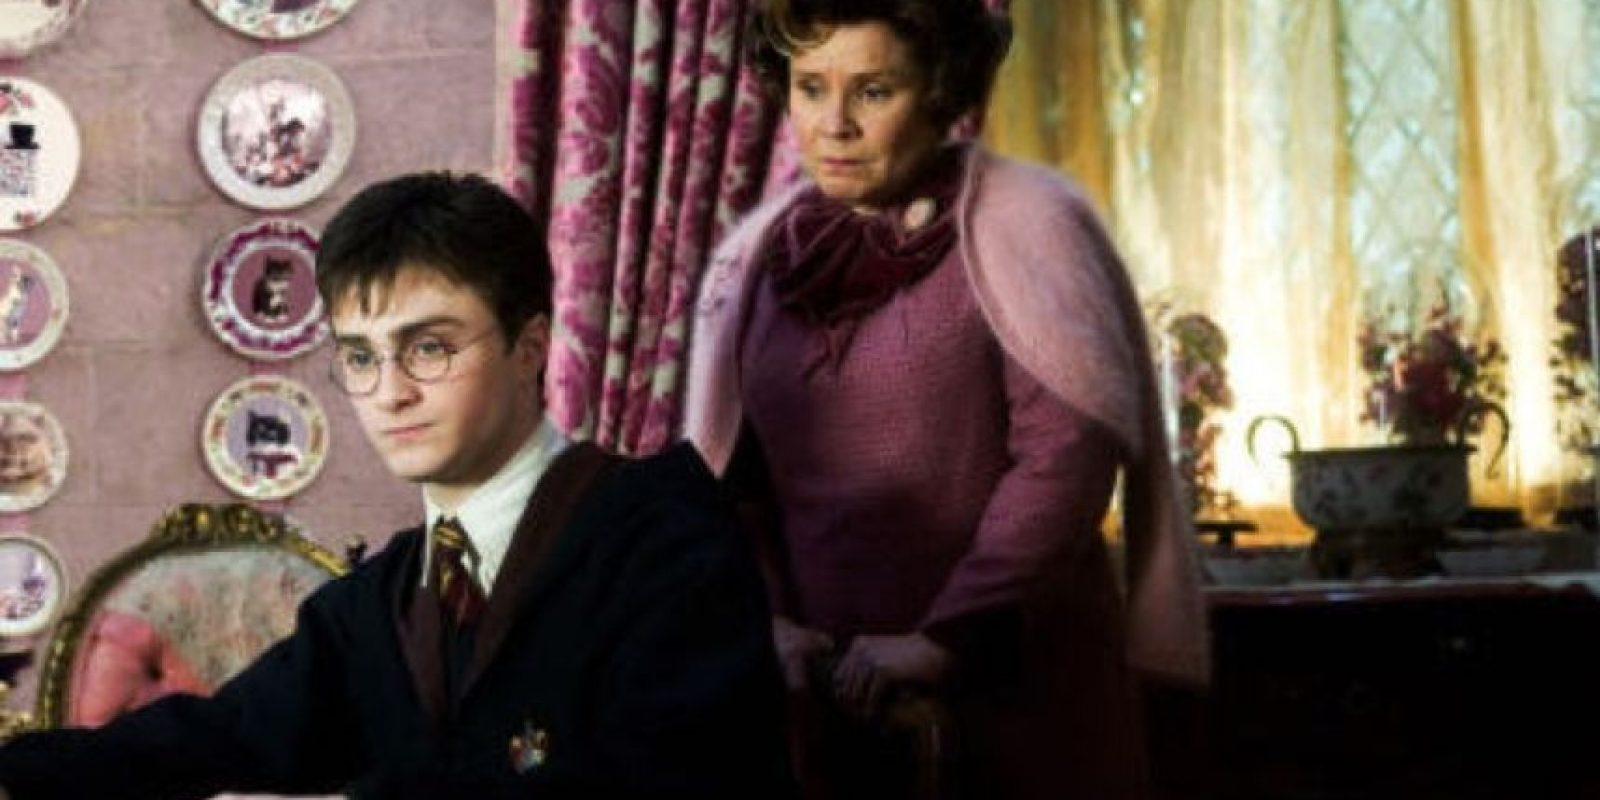 Dolores Umbridge fue una pesadilla para Harry Potter. Foto: Warner Bros.